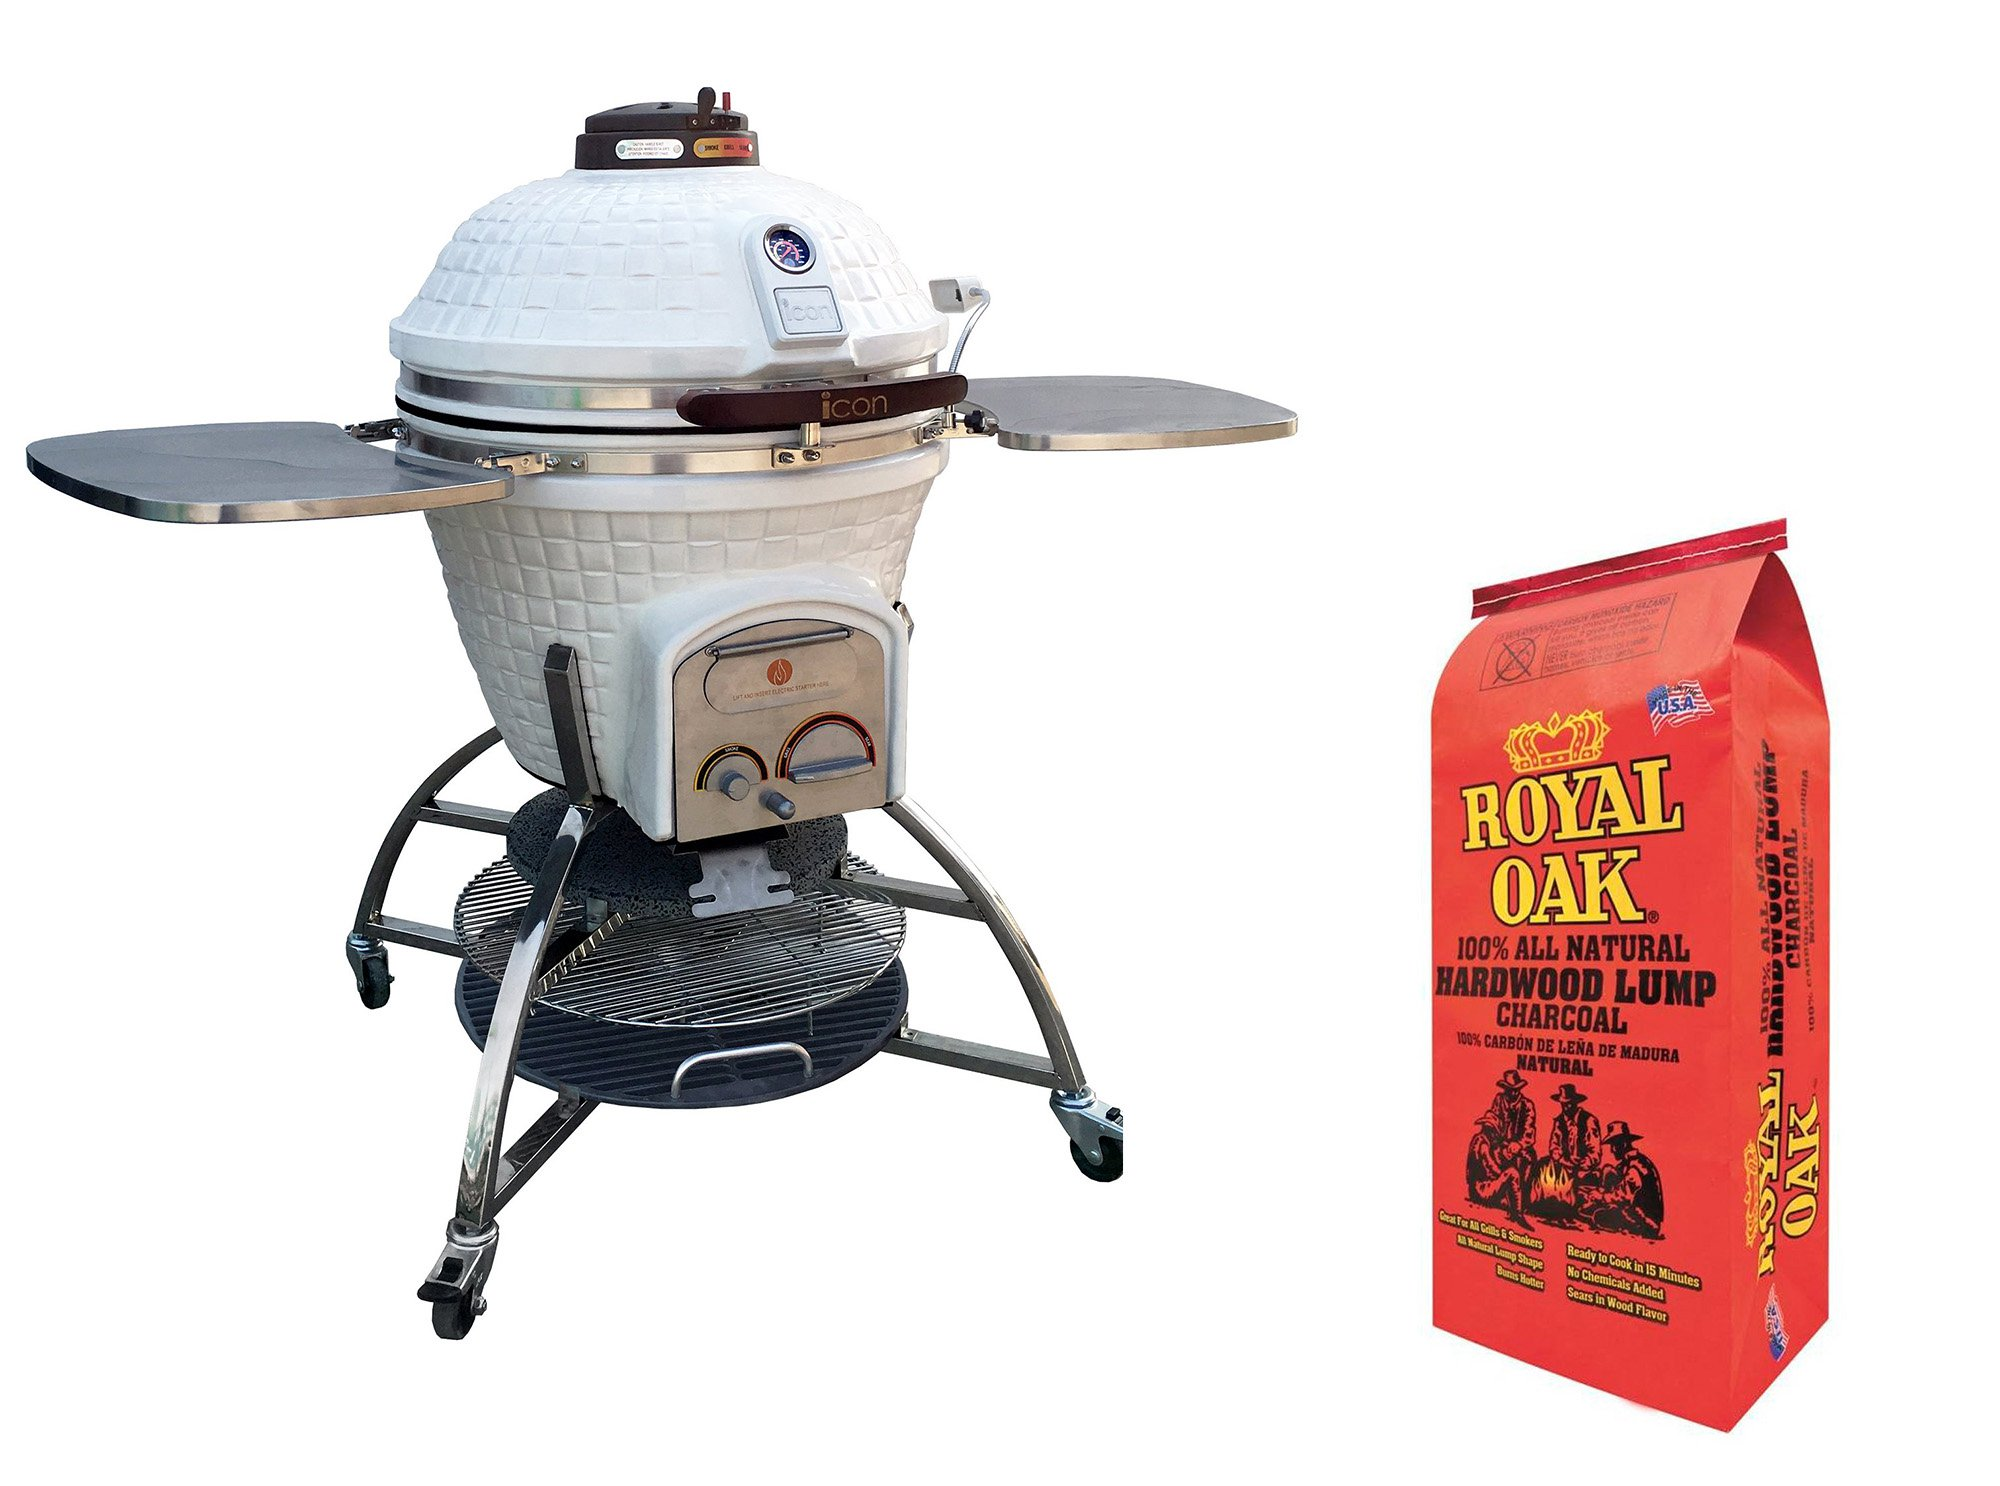 Icon Grills 700 Series White Charcoal Grill with Storage & Lump Charcoal Bag by Icon Grills